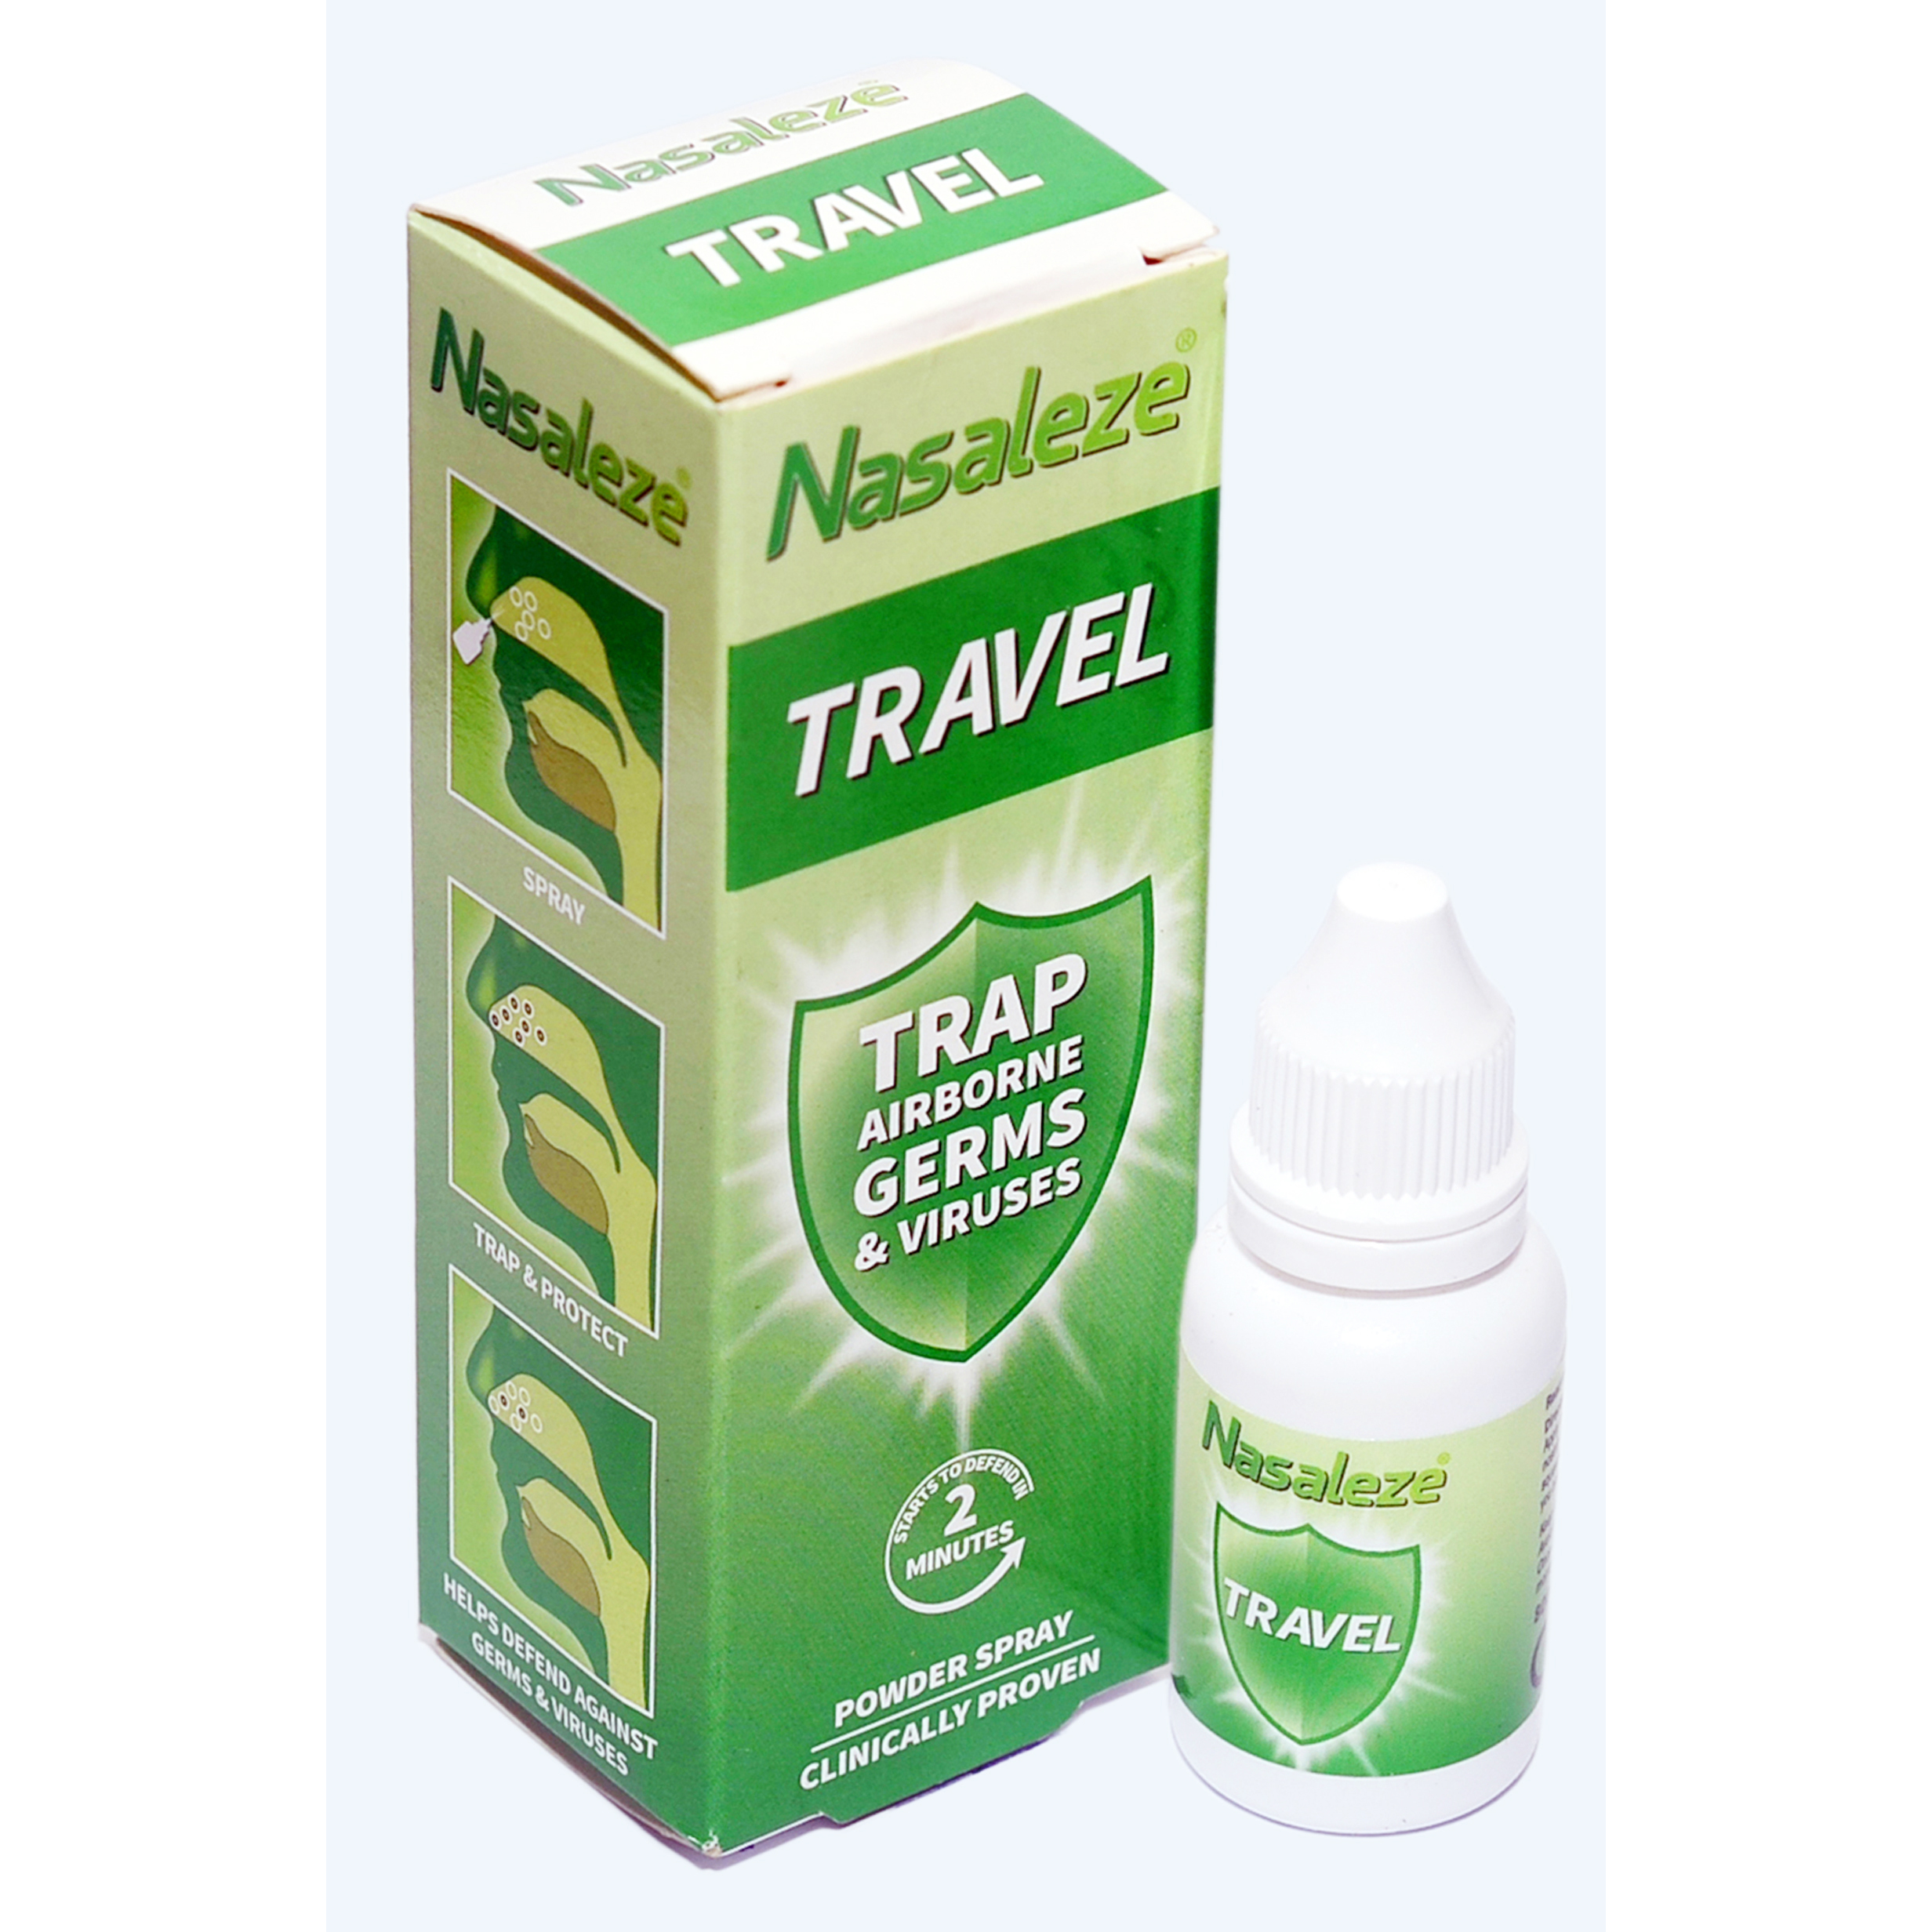 Nasaleze Travel